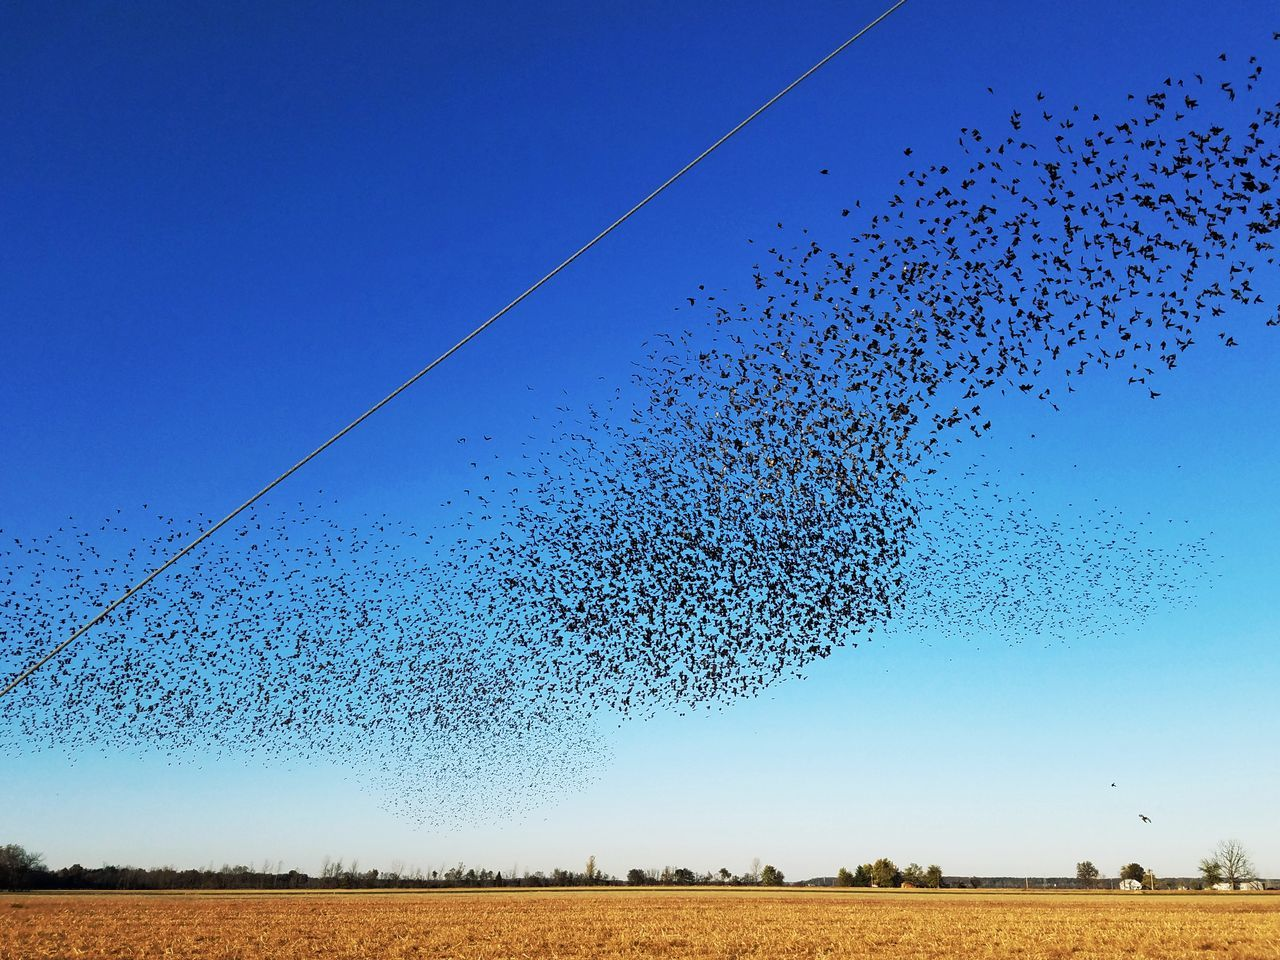 Birds Flying Against Clear Blue Sky